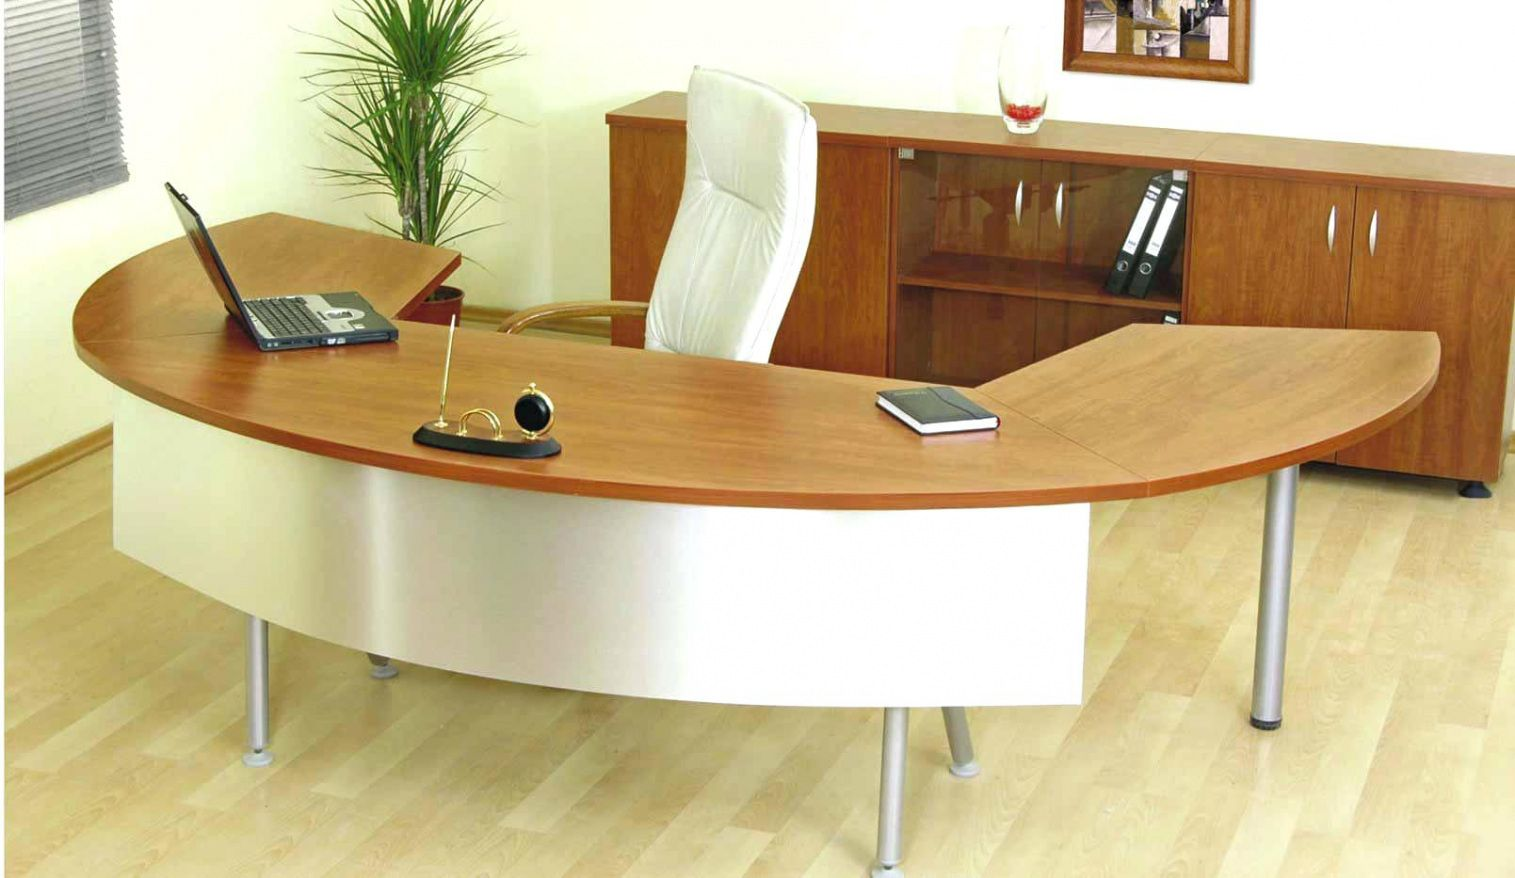 Circular Desk Home Office - Luxury Home Office Furniture Check